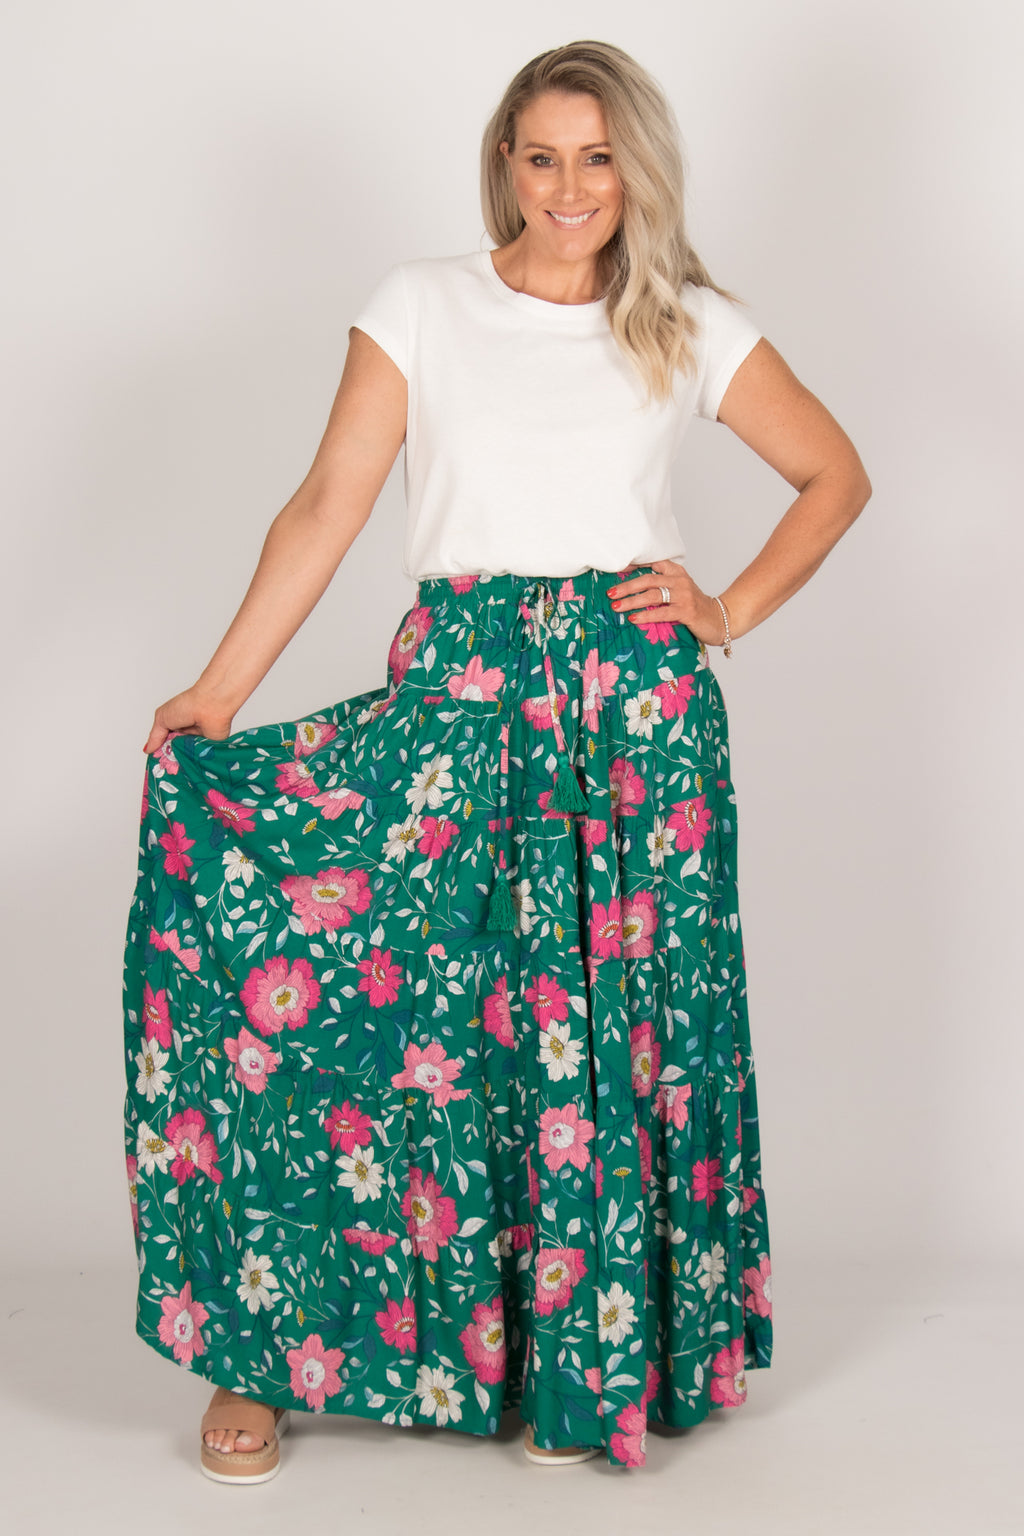 Britta Skirt in Turquoise/Pink